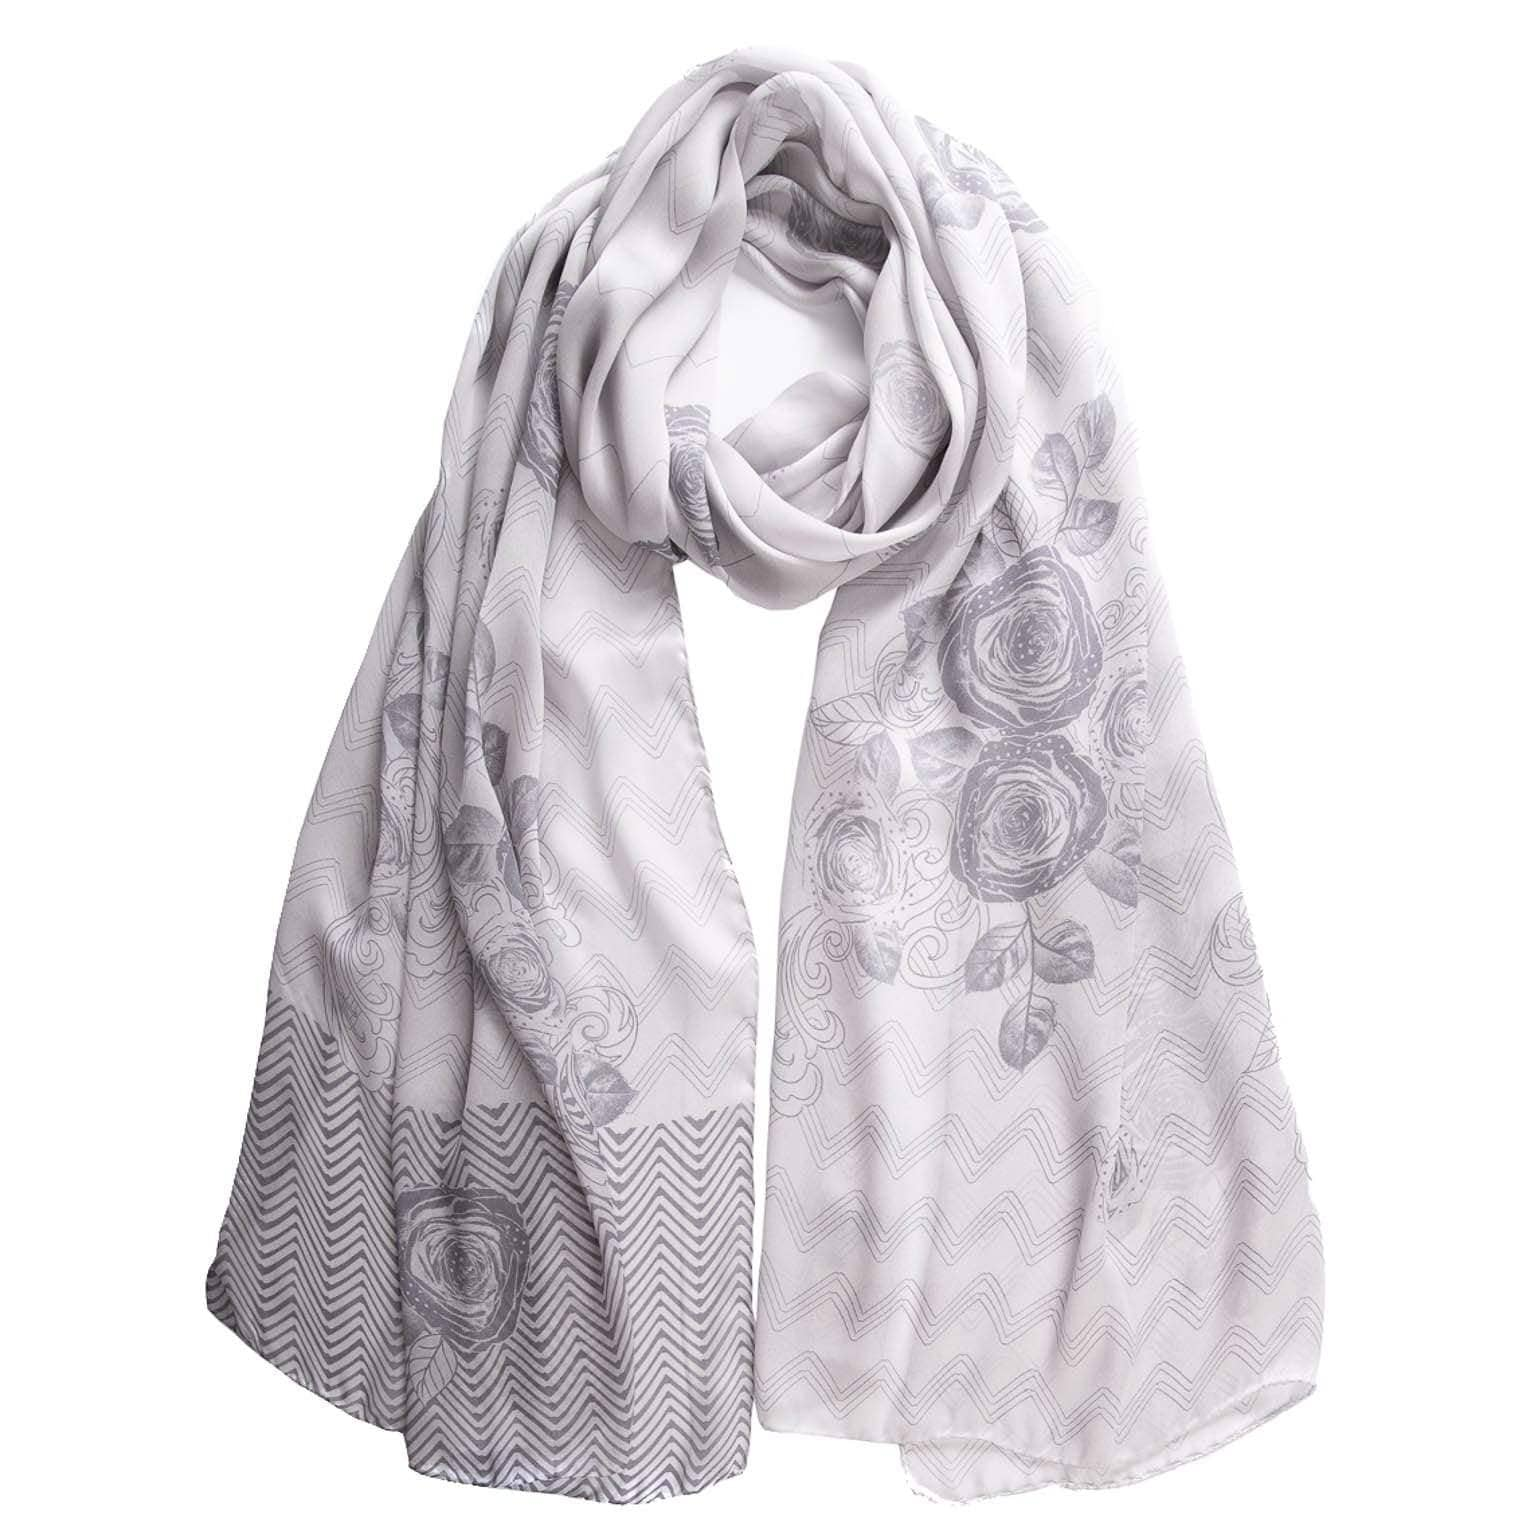 Silver Formal Shawl - Silk Satin Charmeuse Wrap